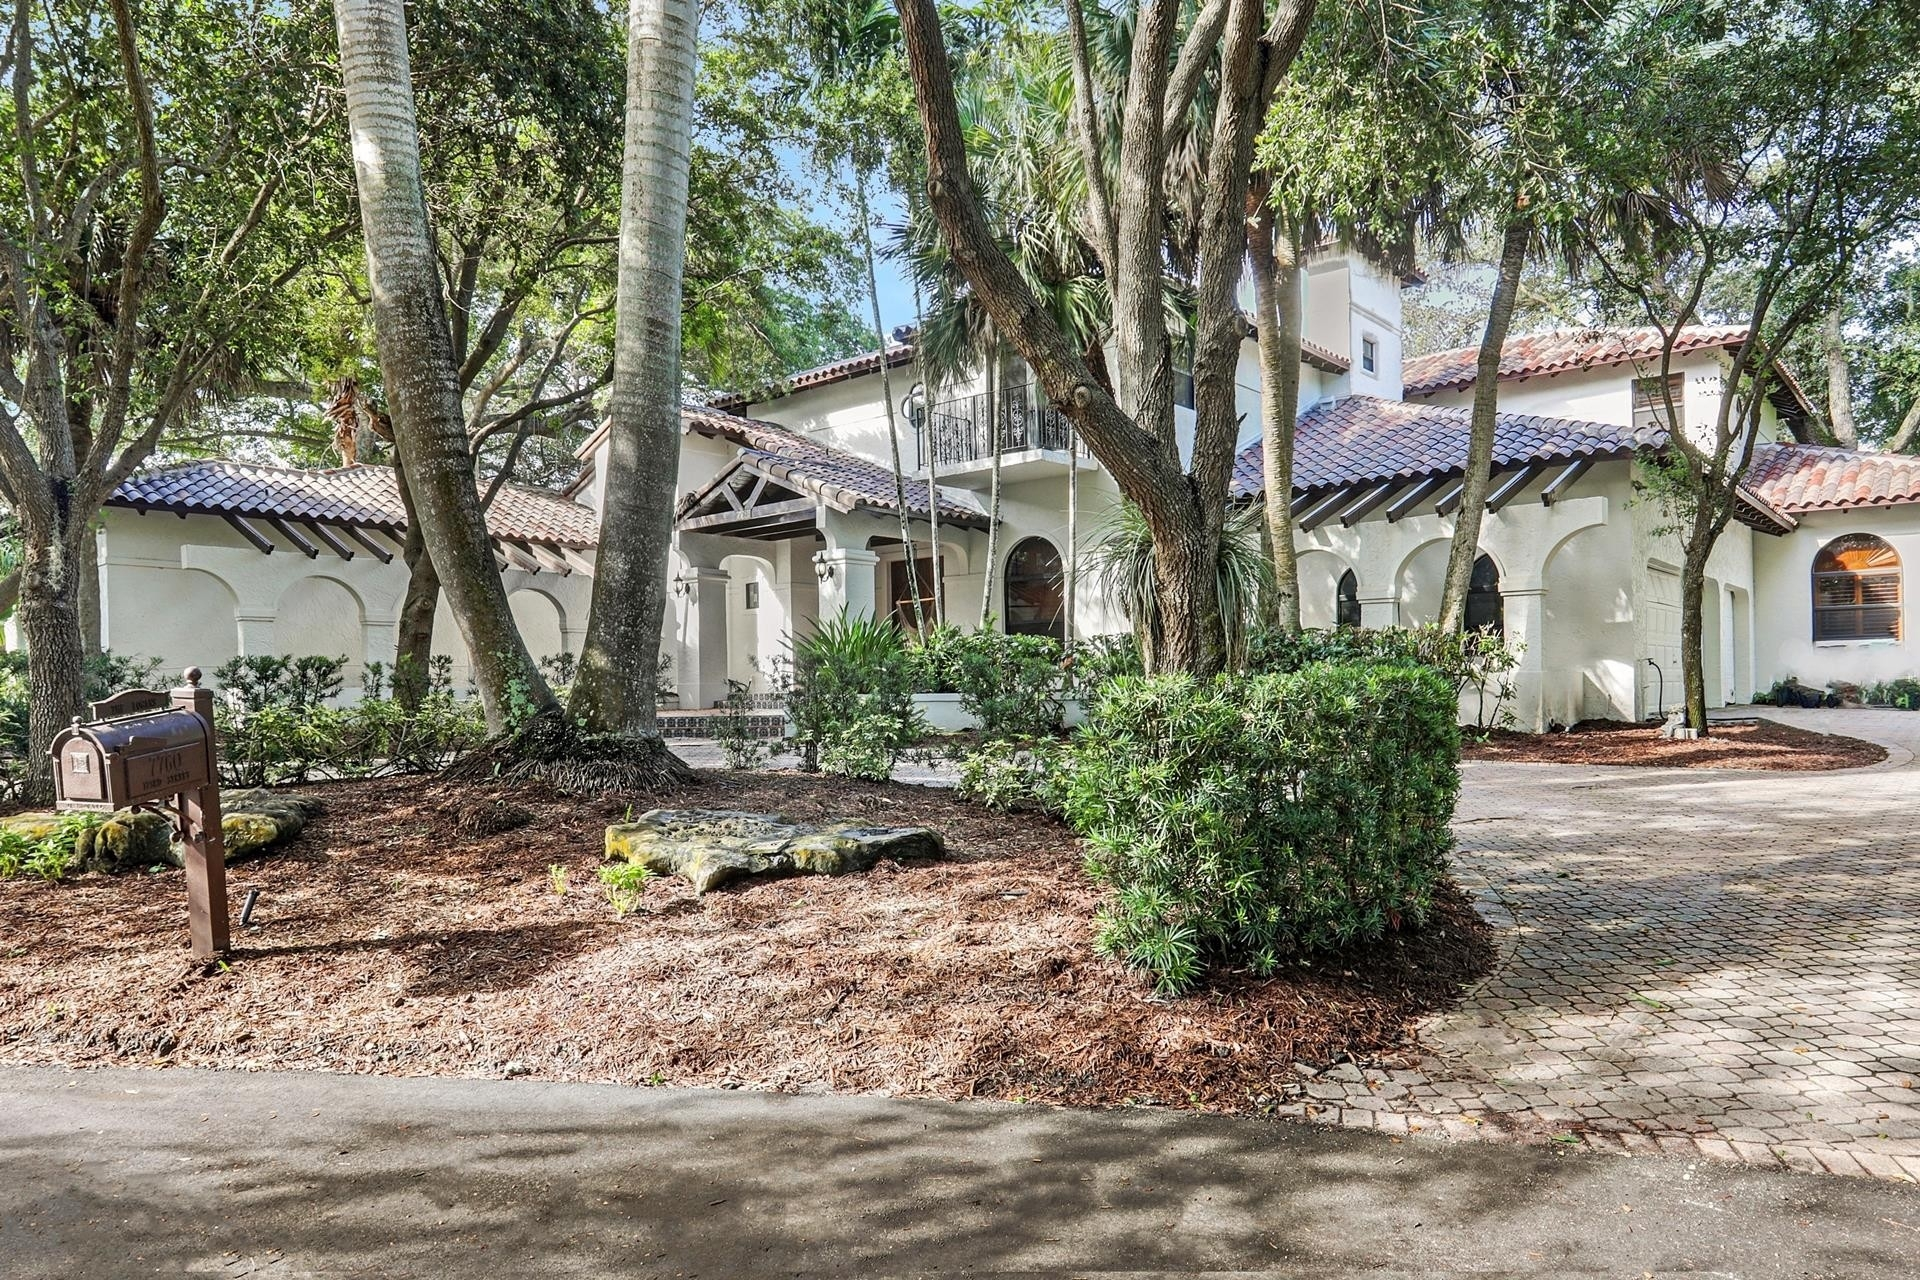 Property à Palmetto Bay, FL 33157